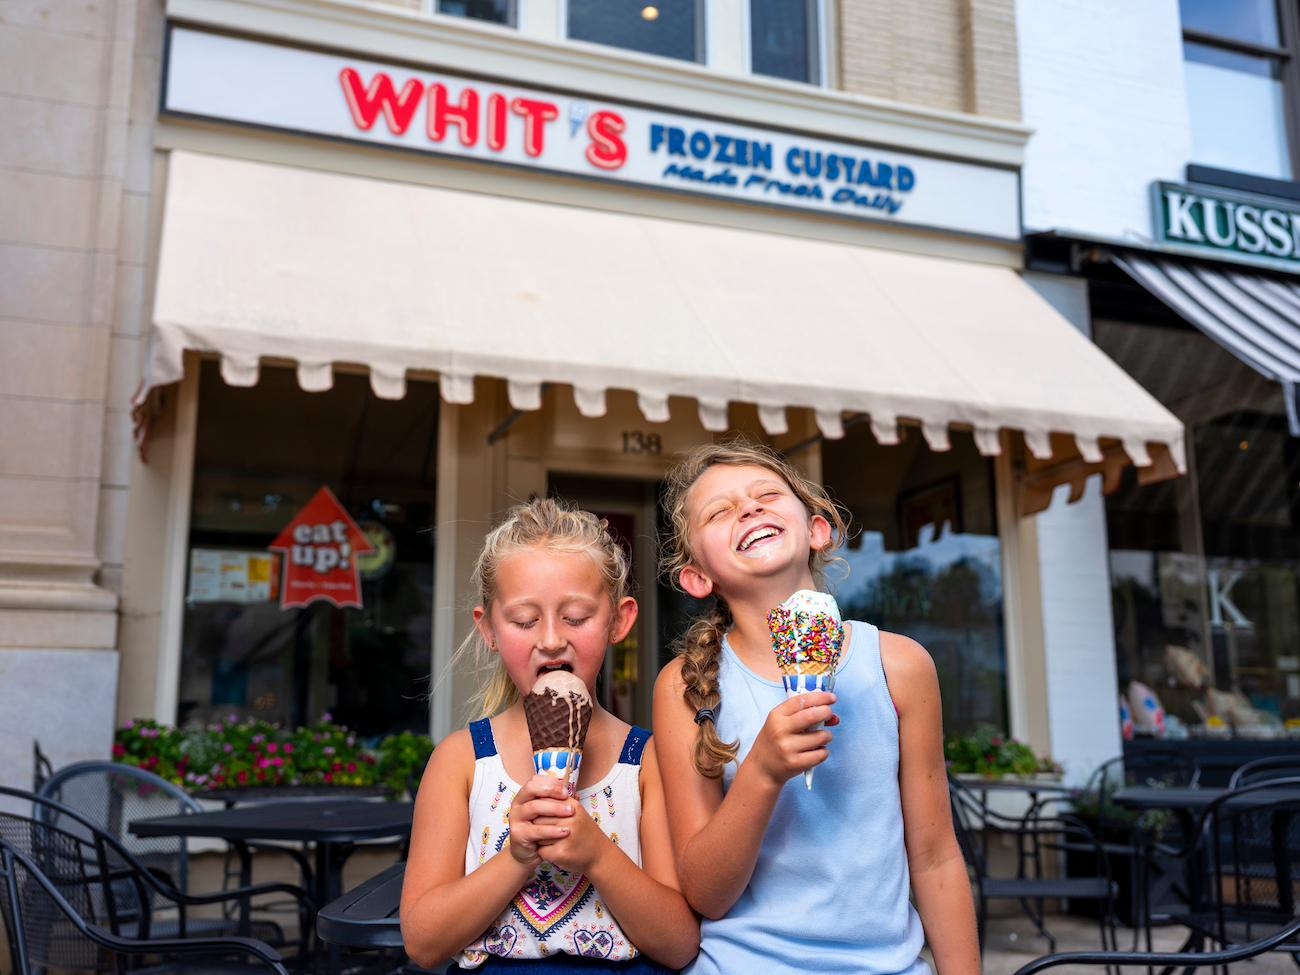 Whits Frozen Custard makes their creamy treats fresh every day. Staying focused on quality, they only feature three flavors at a time: vanilla, chocolate, and a special weekly flavor. It's located in the charming village of Granville. ADDRESS:{ }844 S 30th Street, Heath, OH (43056) / Image: Garrett Martin via Explore Licking County // Published: 8.23.19